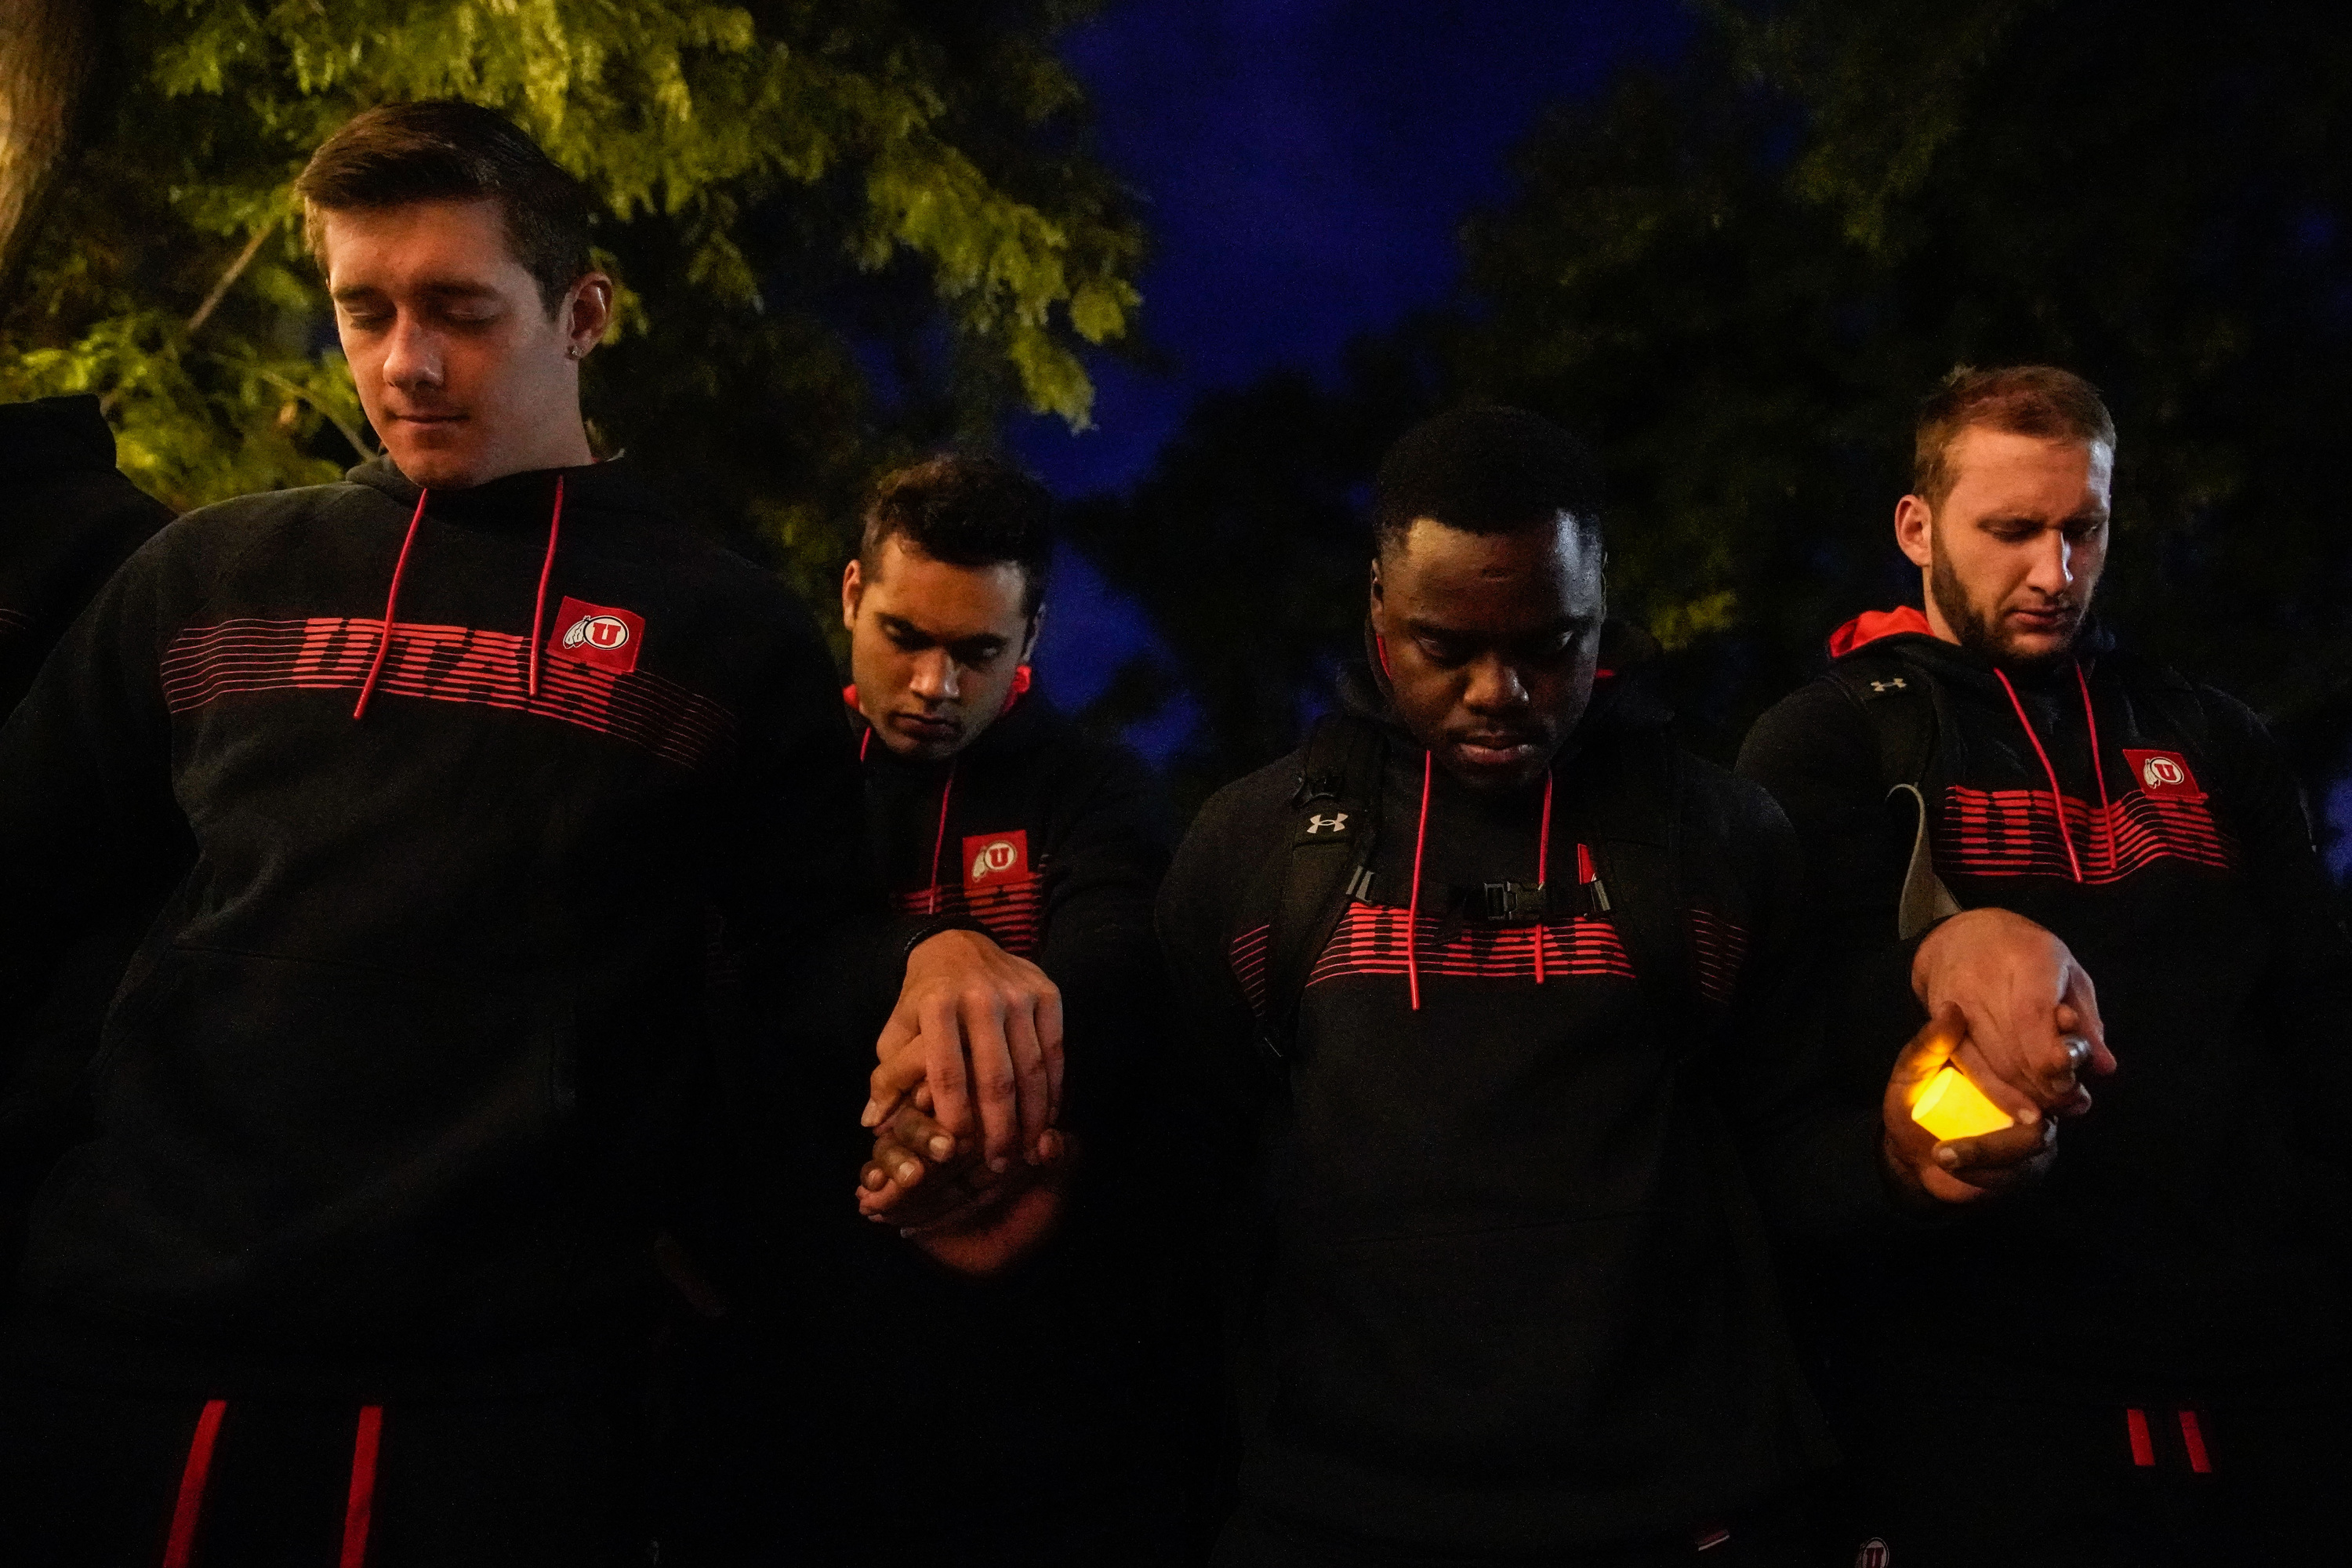 University of Utah football players, wearing black, holding hands pray during a candlelight vigil